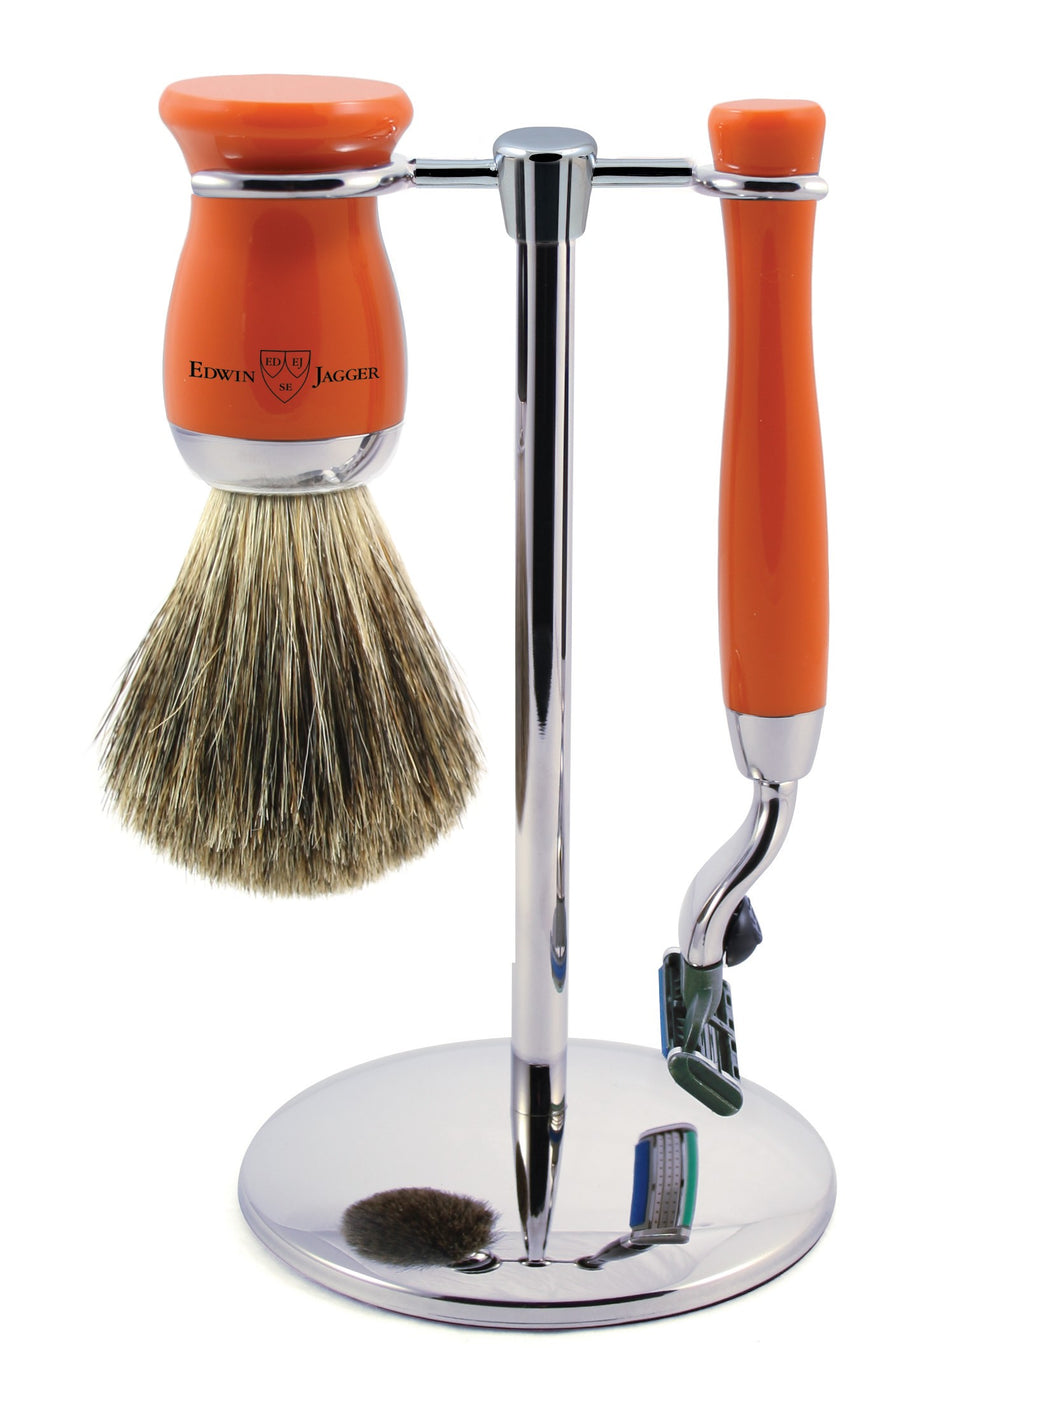 Edwin Jagger 3 Piece Gillette MACH 3 Shaving Set - Orange